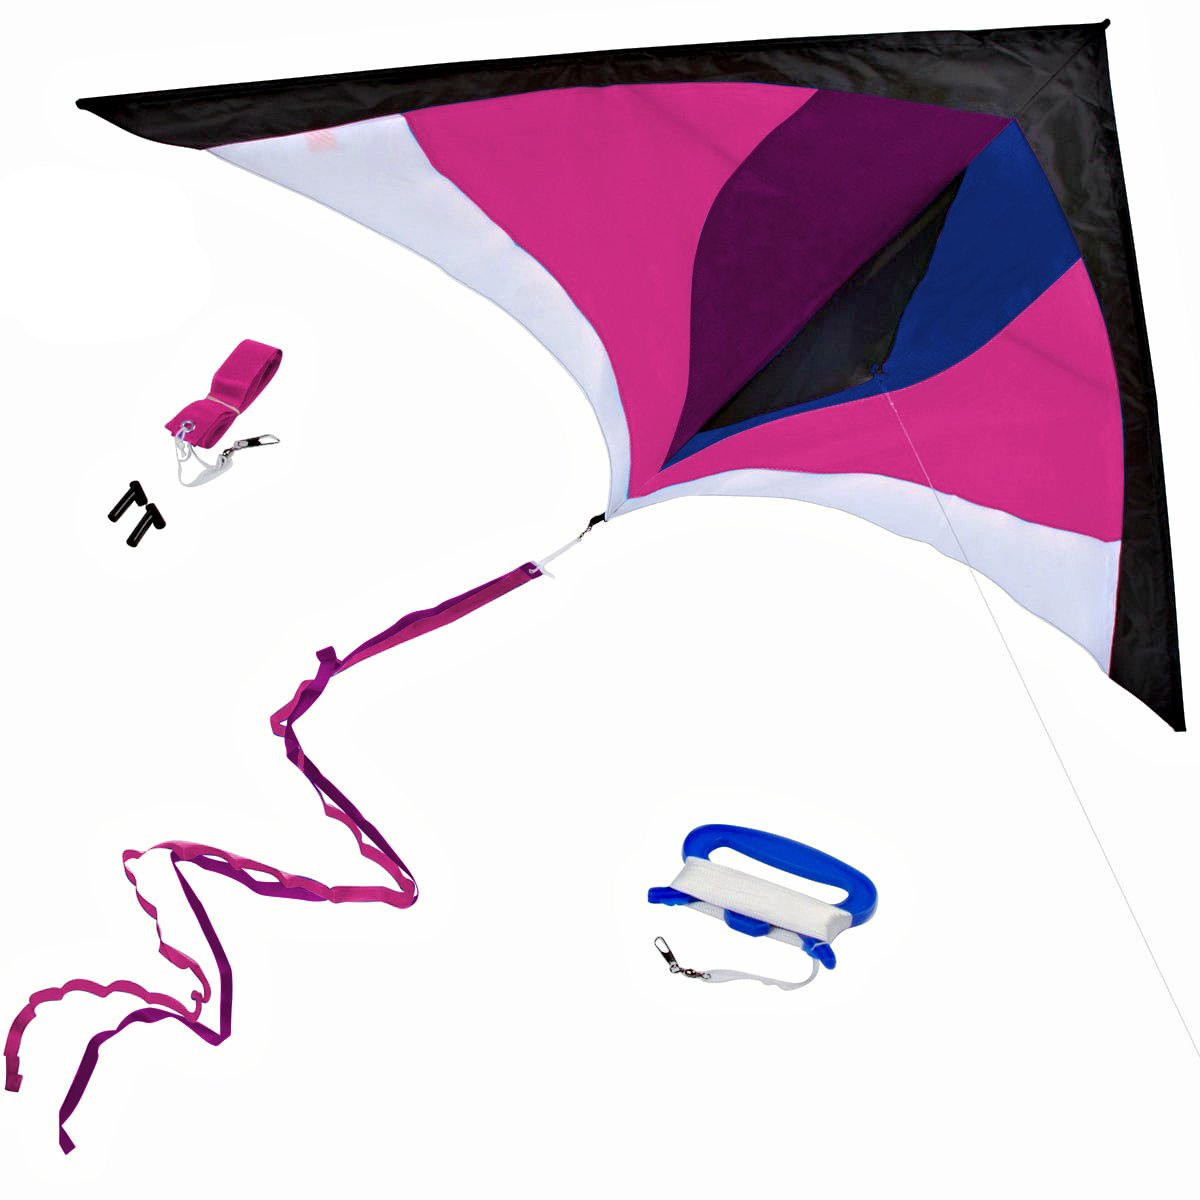 Best Delta Kite, Easy Fly for Kids and Beginners, Single Line w/Tail Ribbons, Stunning Pink, Purple & Blue, Materials, Large, Meticulous Design and Testing + Guarantee + Bonuses! by StuffKidsLove